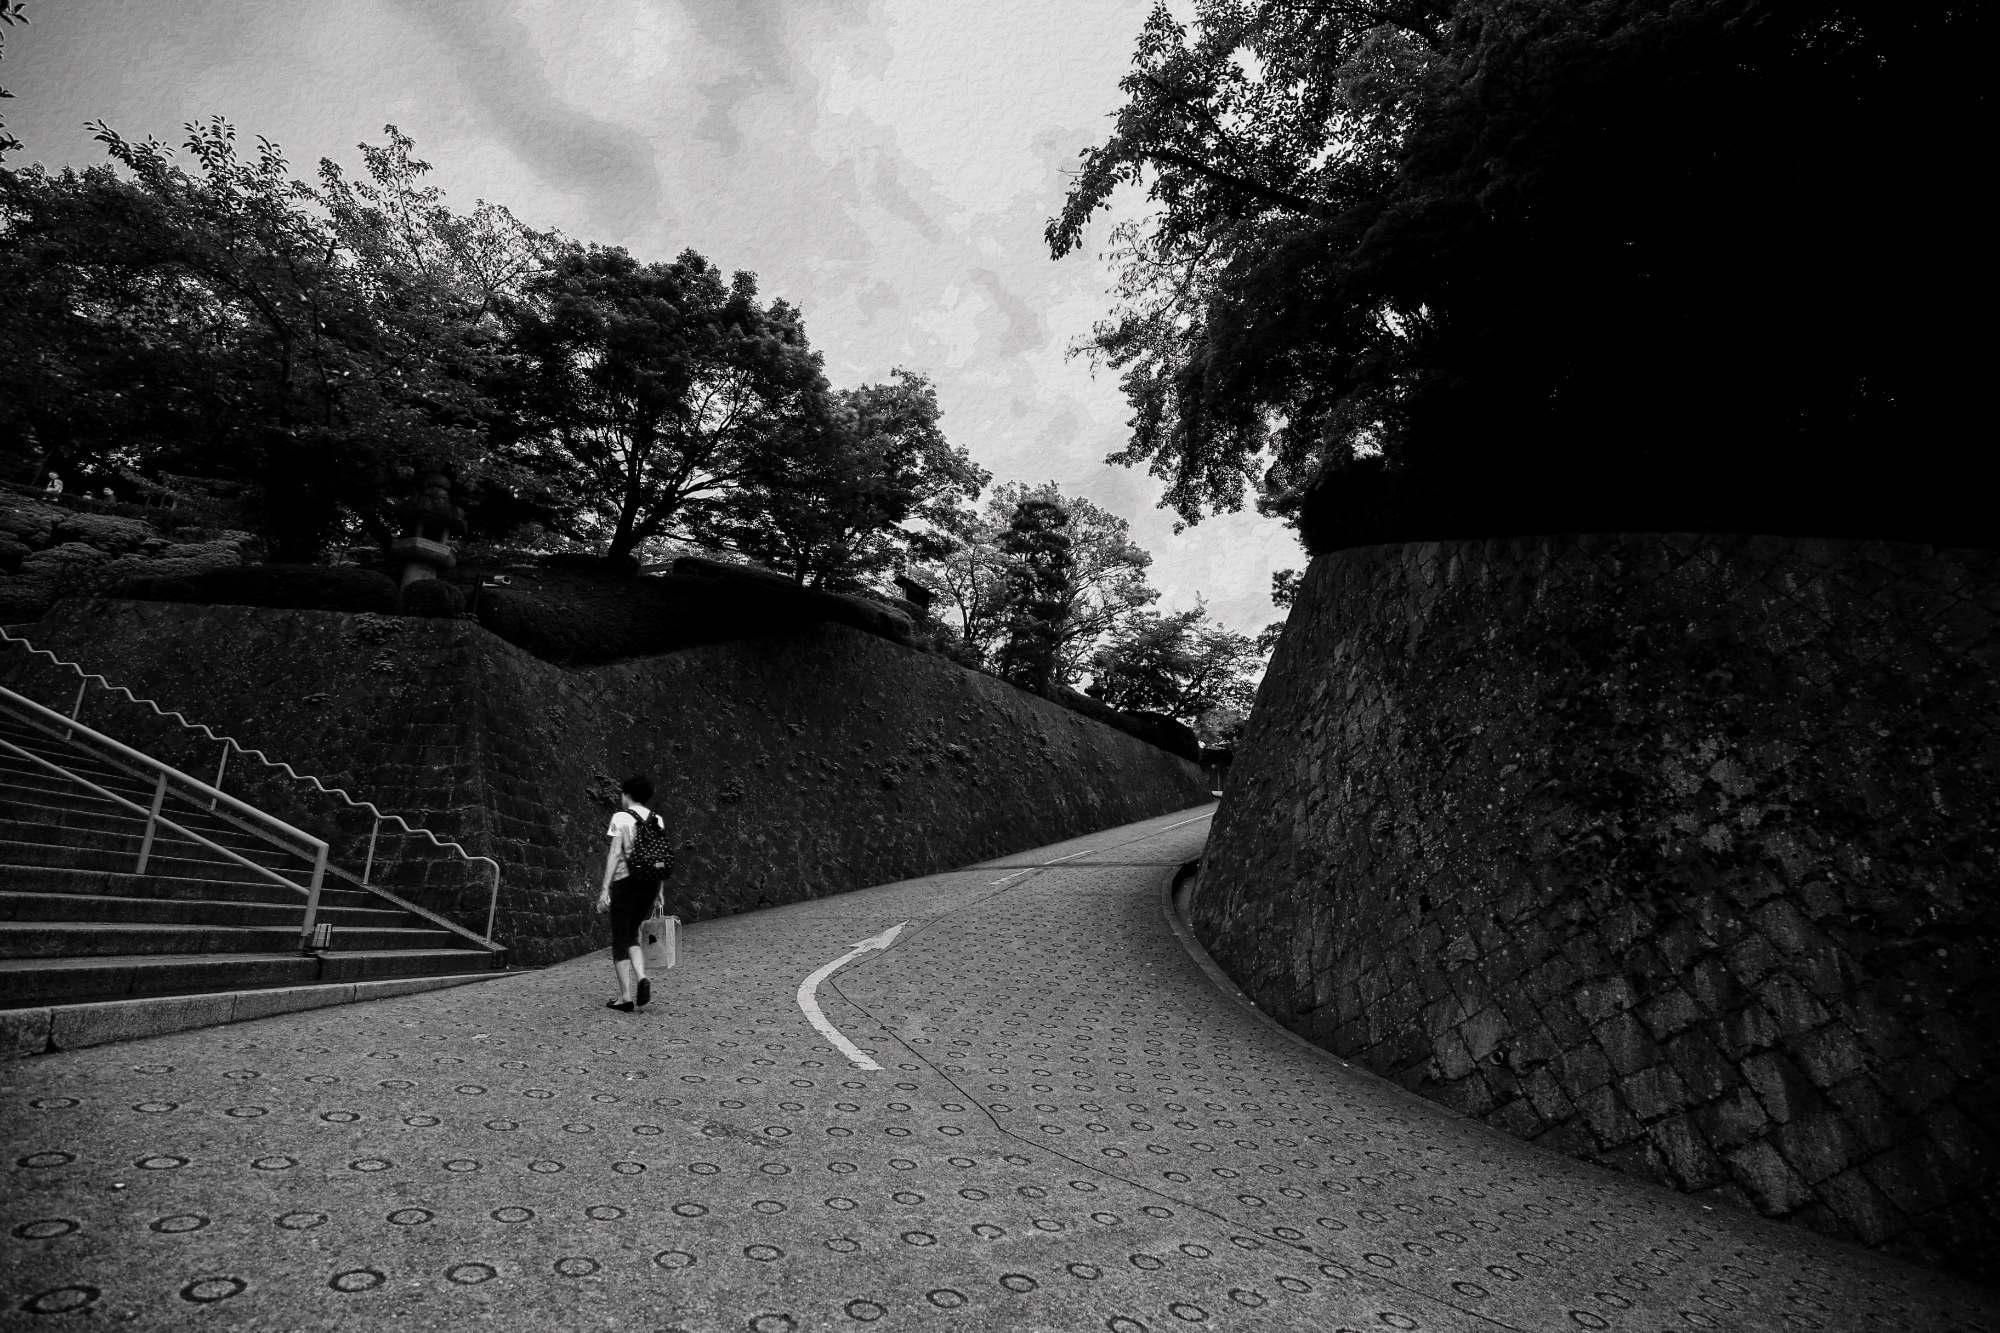 Black and white photograph taken in Japan. Lots of leading lines with a person not knowing which way to go.